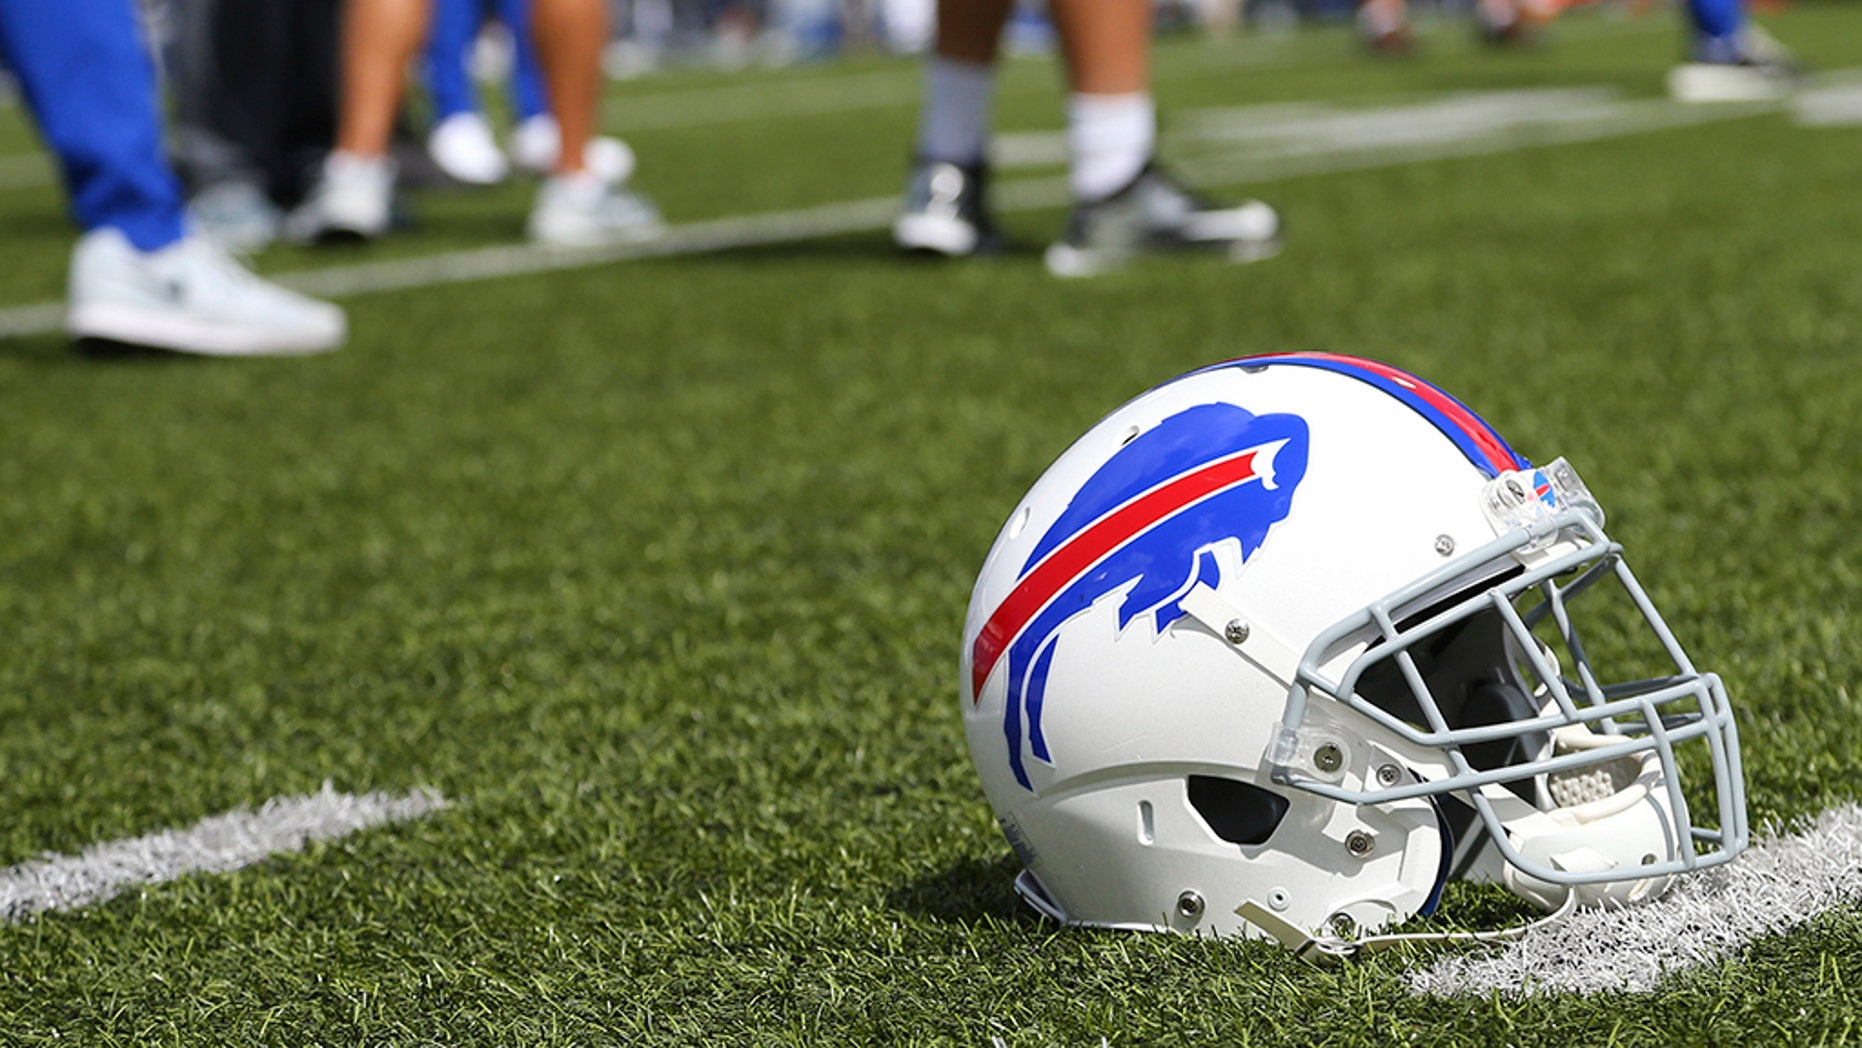 A Buffalo Bills helmet sits on the field before an NFL football game between the Buffalo Bills and the Los Angeles Chargers, Sunday, Sept. 16, 2018, in Orchard Park, New York.